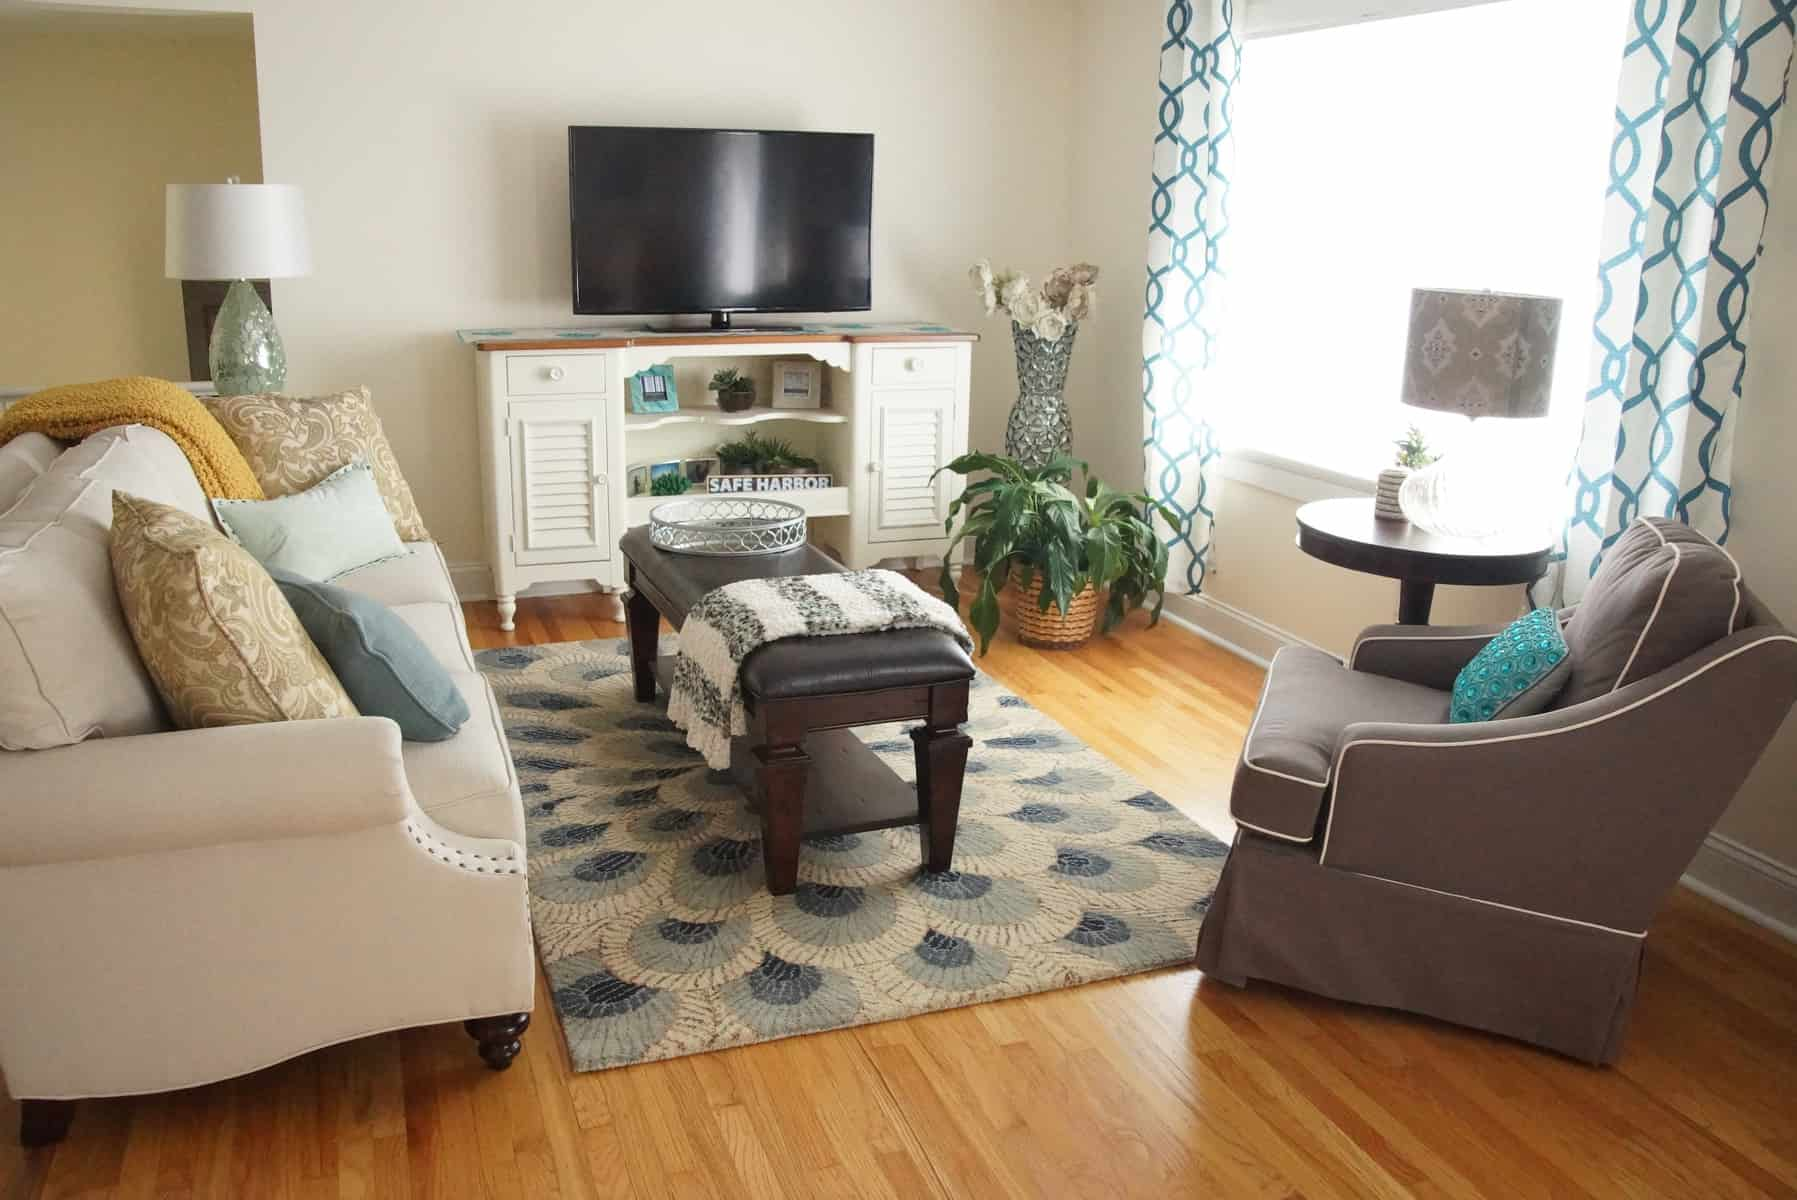 rug in living room makeover Glam Coastal Living Room Makeover  HeartWork Organizing Tips for